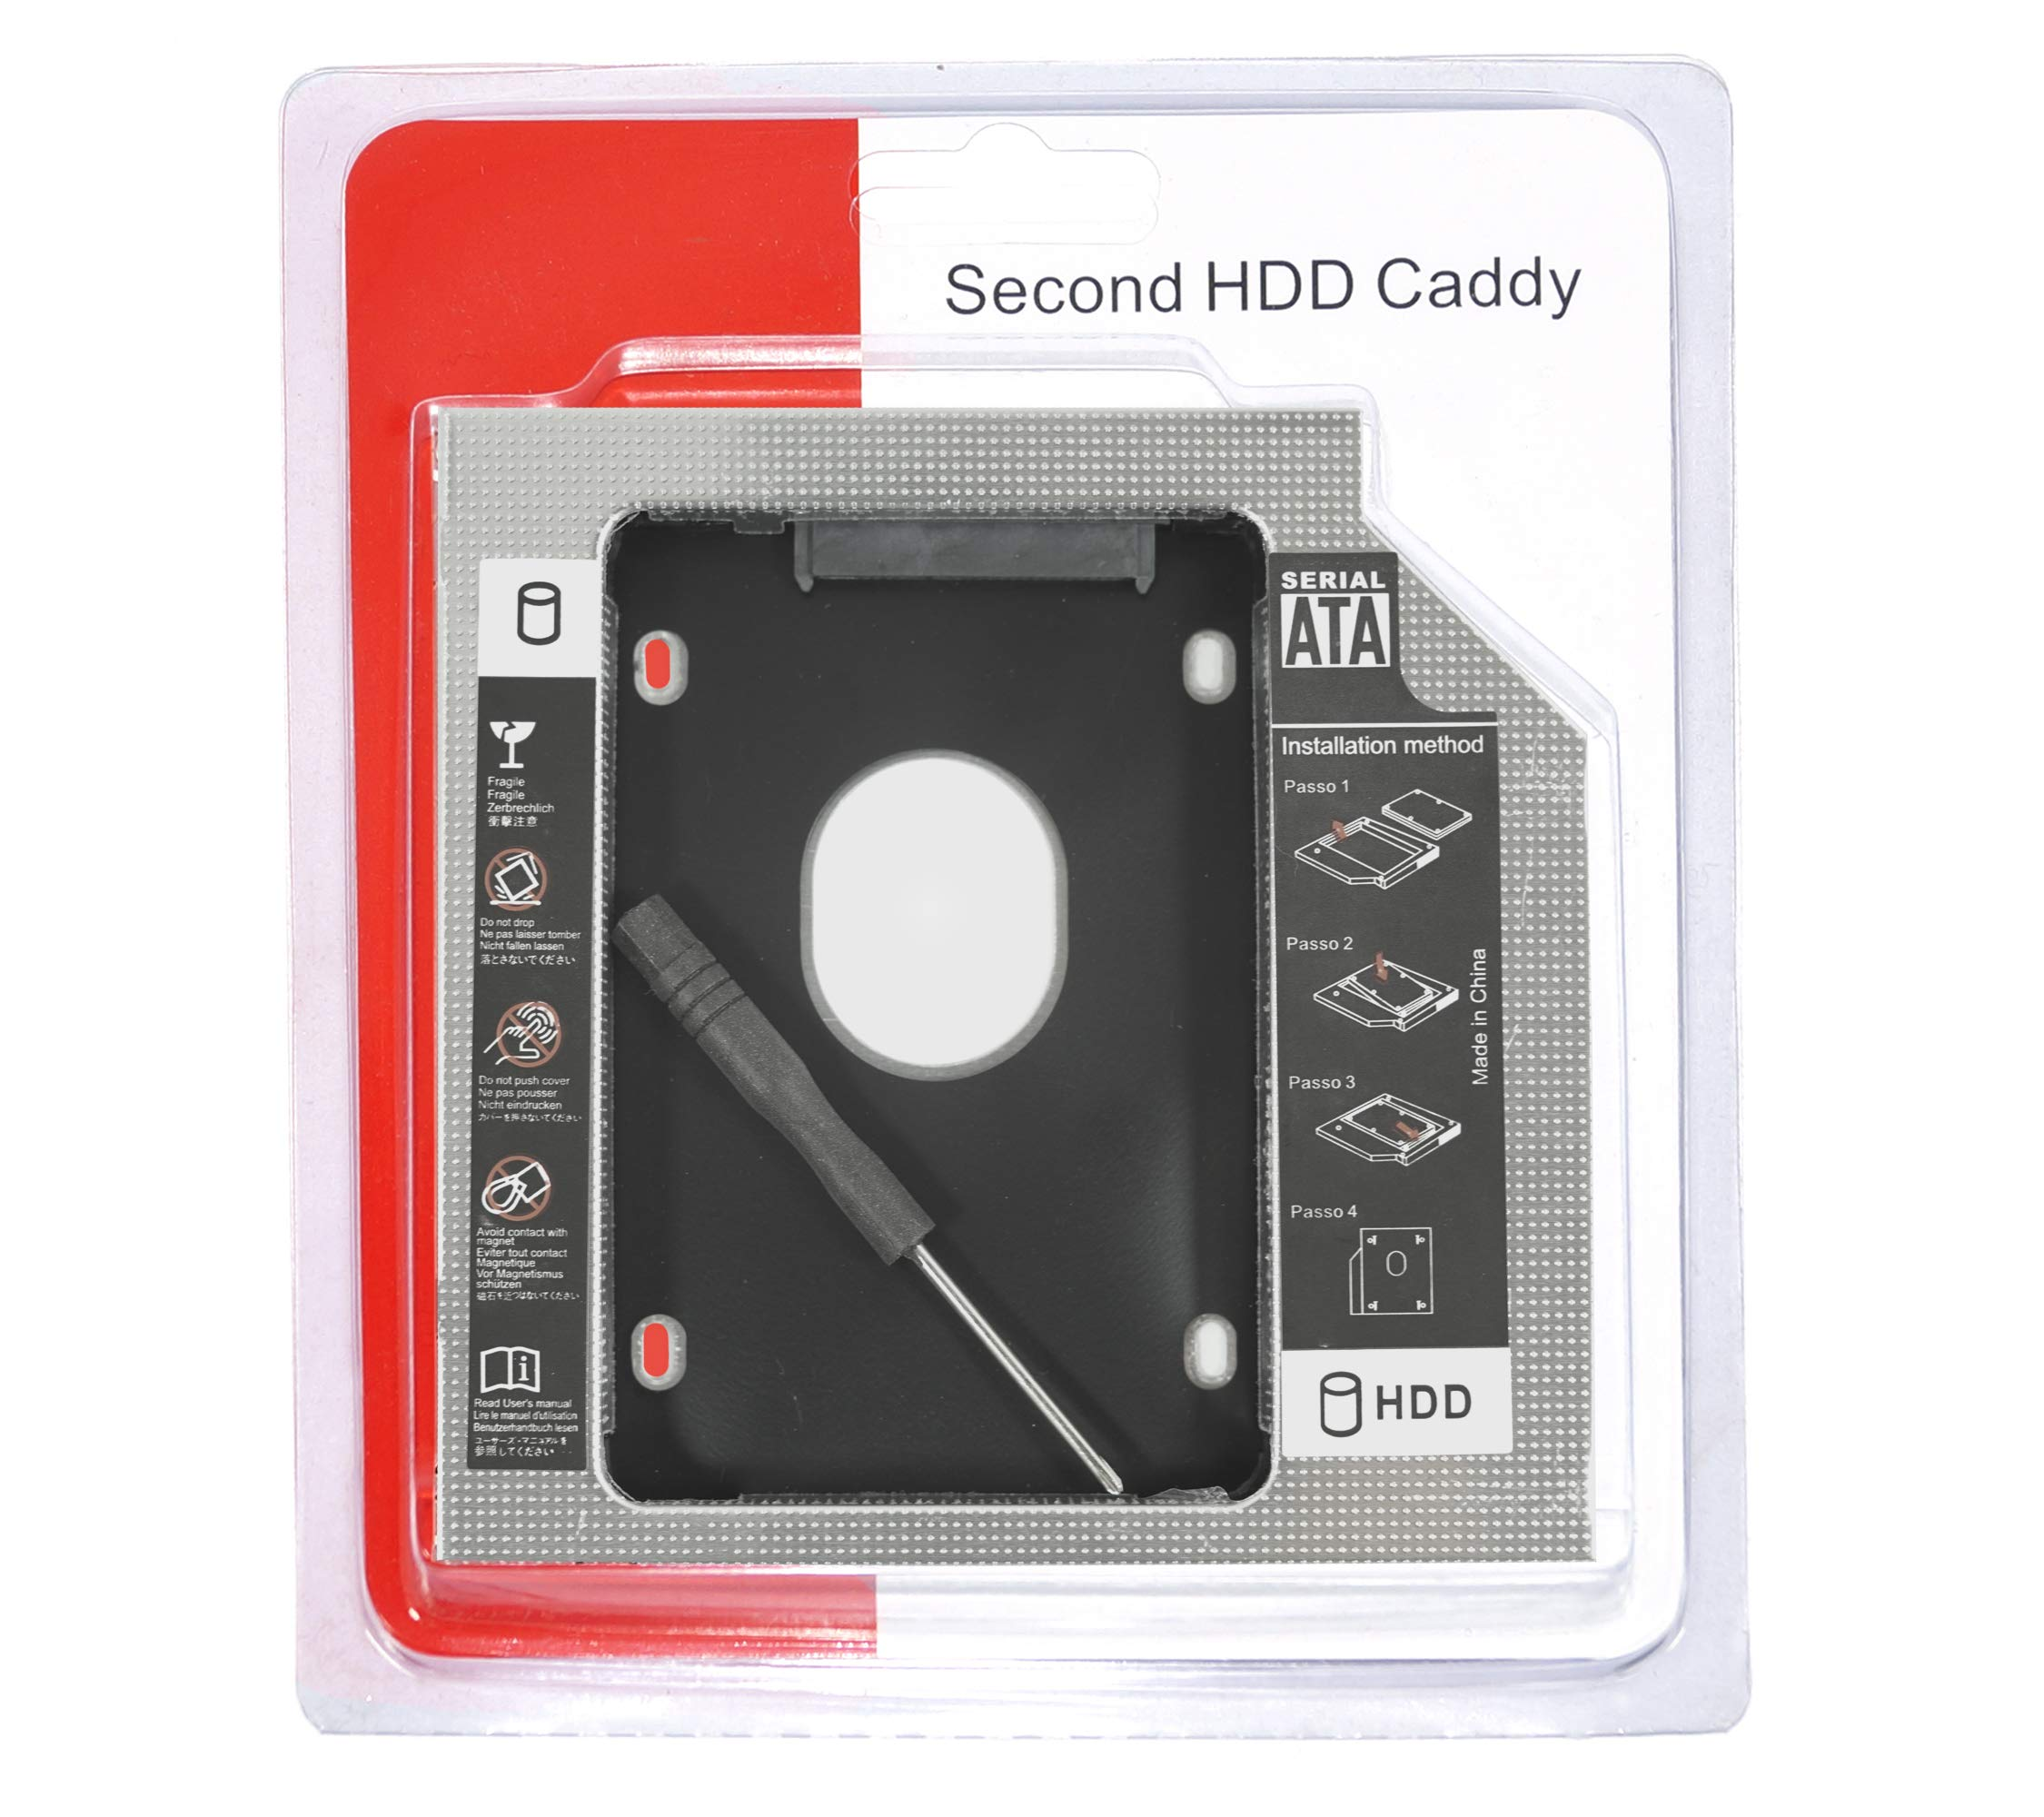 SEPAL 9.5 mm Universal 2nd Bay SATA Hard Drive Caddy for CD DVD-ROM Drive Slot product image